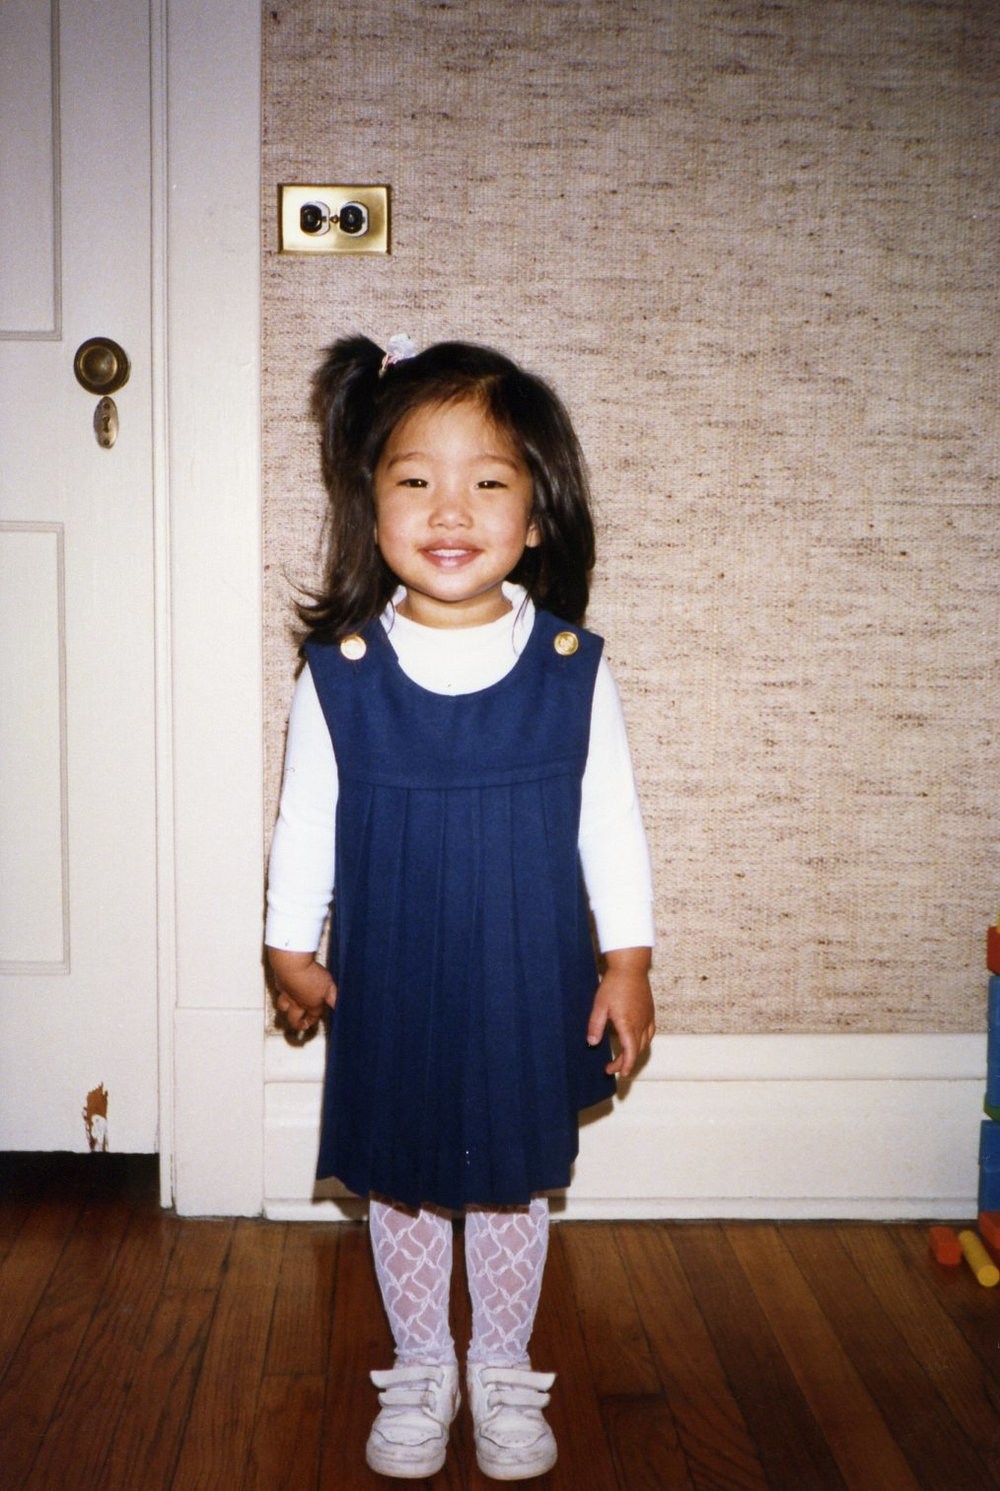 3 year old me